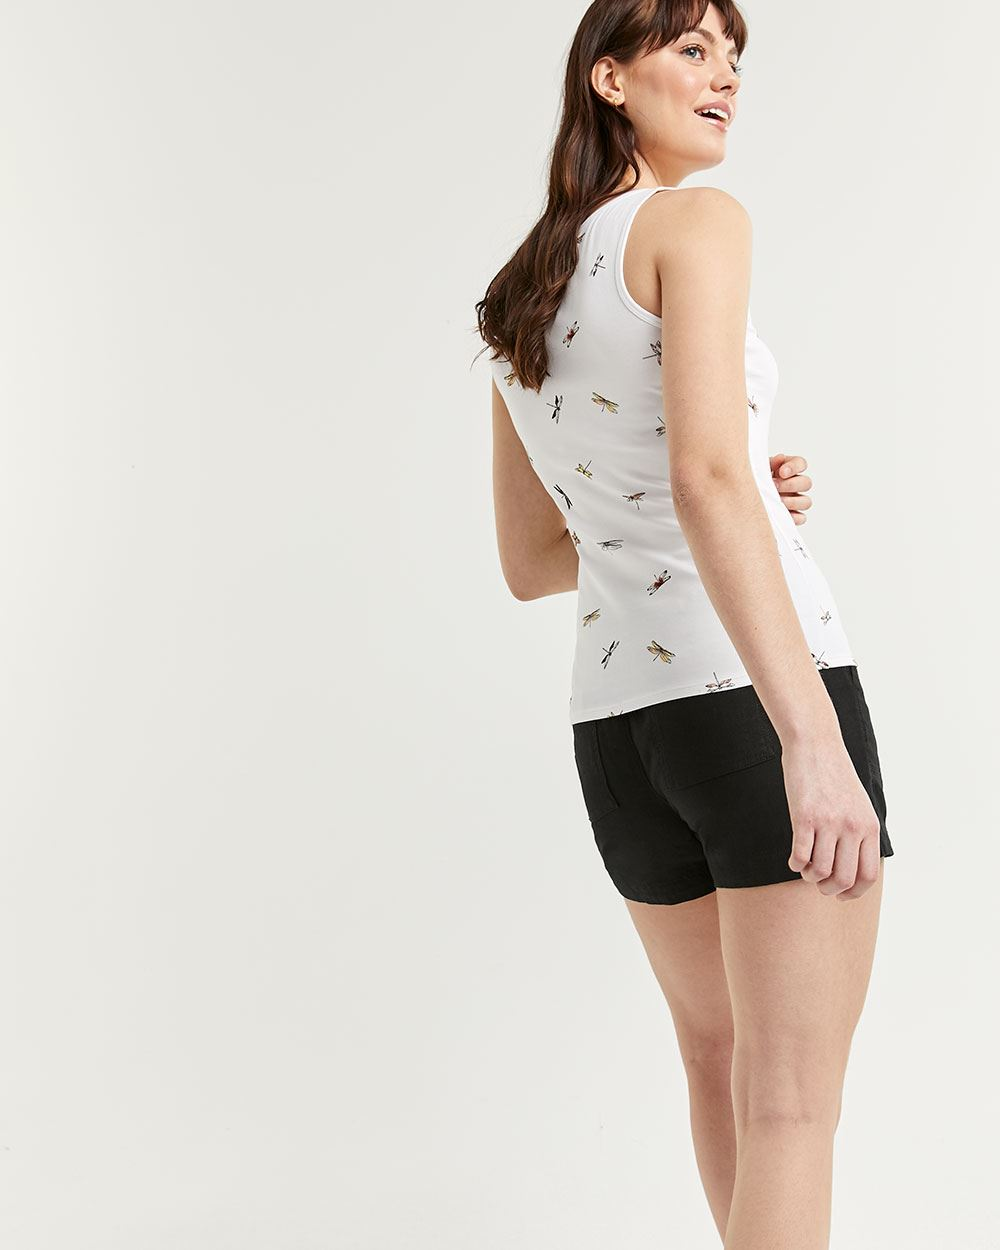 Scoop Neck Printed Tank Top R Essentials